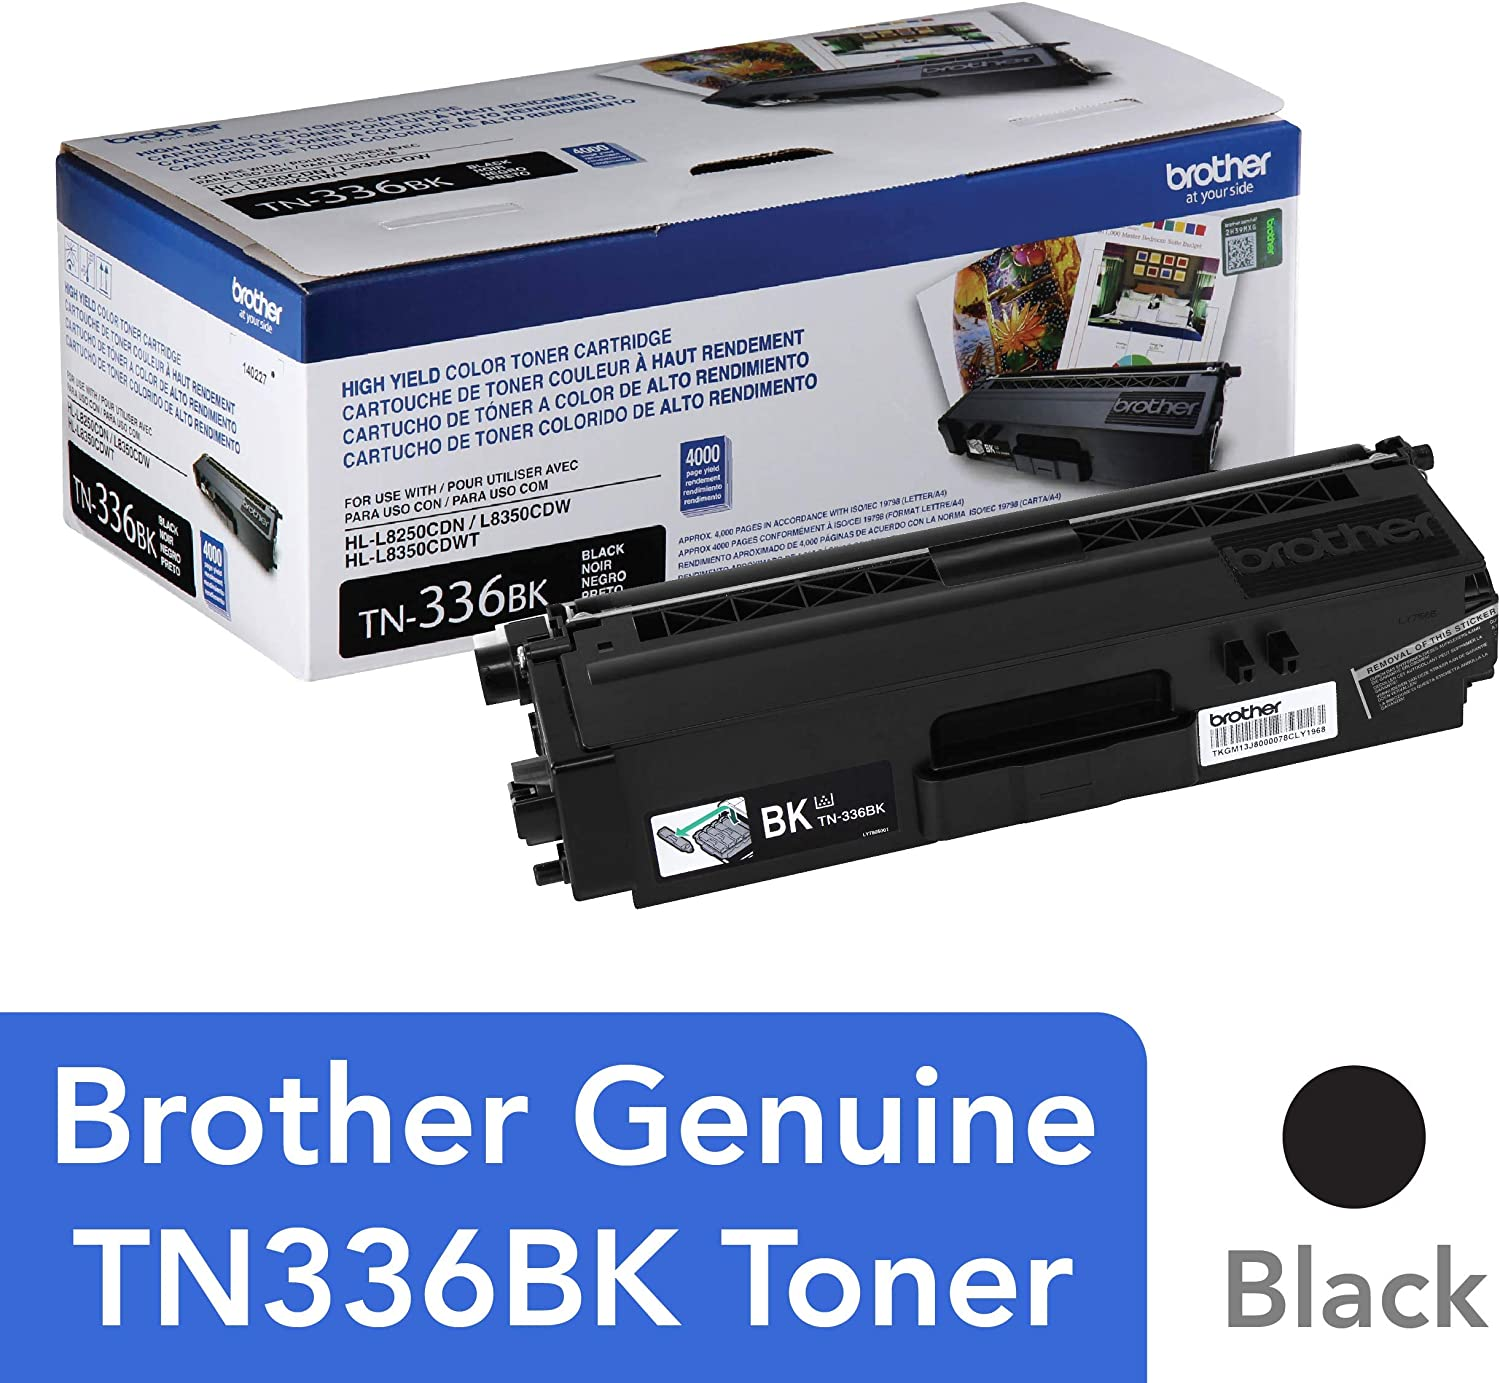 8 pack TN336 Set for  HLL8350CDWT Printer FREE SHIPPING!